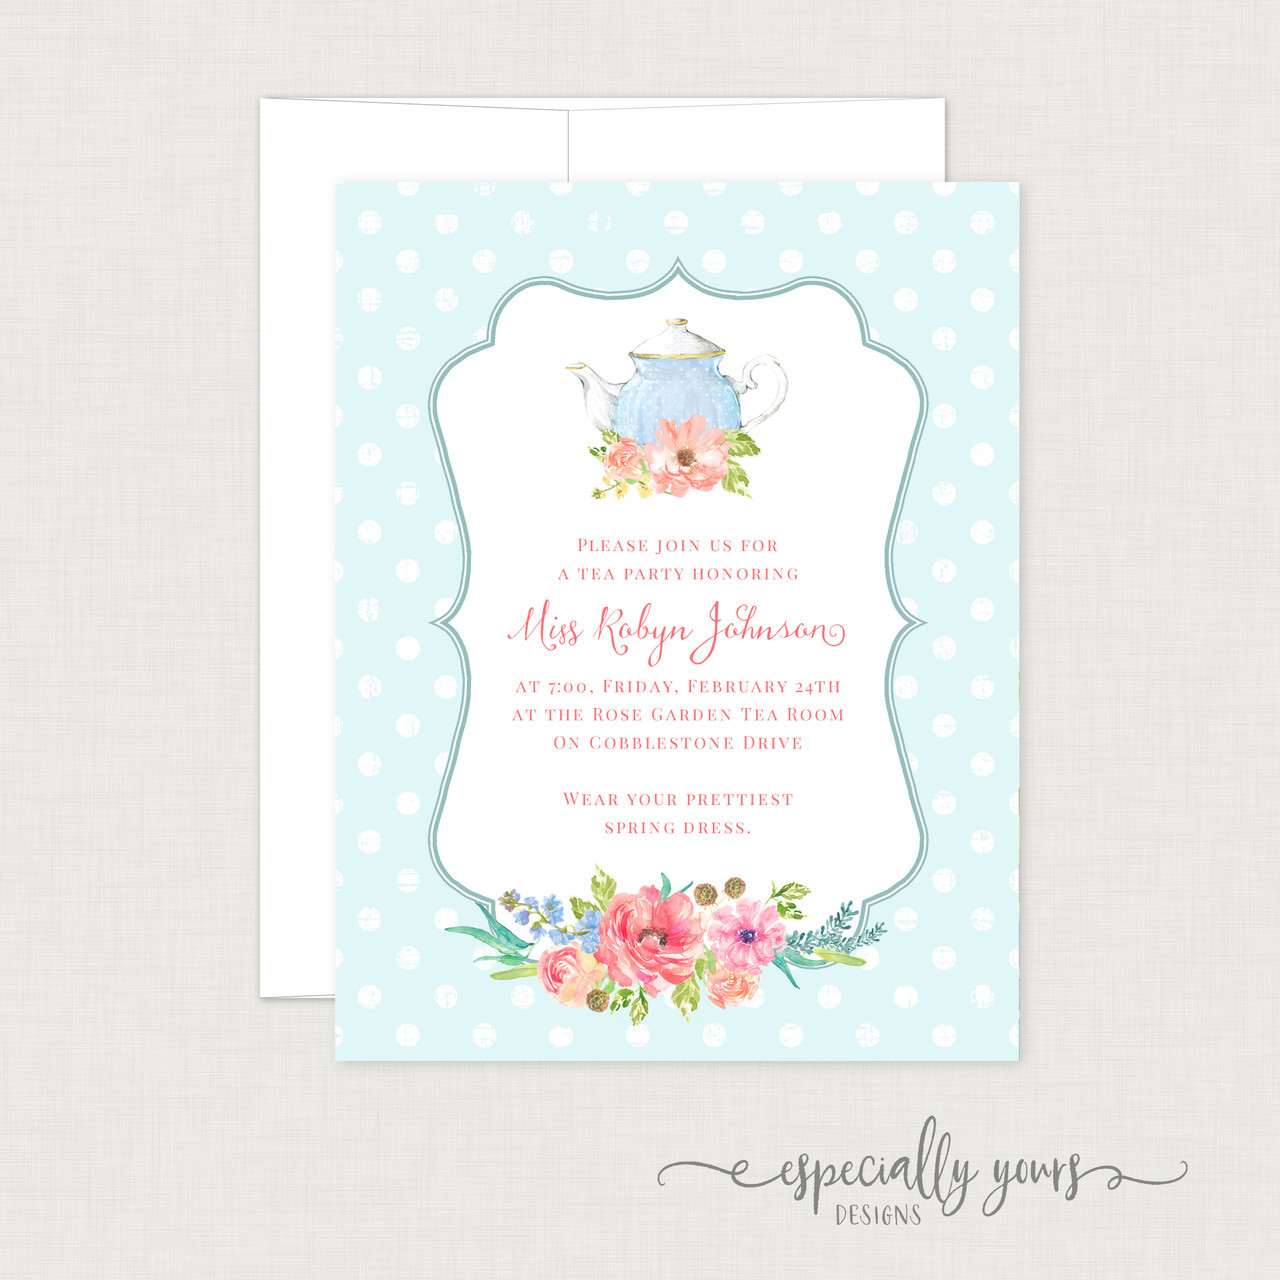 Tea Party Floral Bridal Shower Invitation - Especially Yours Designs